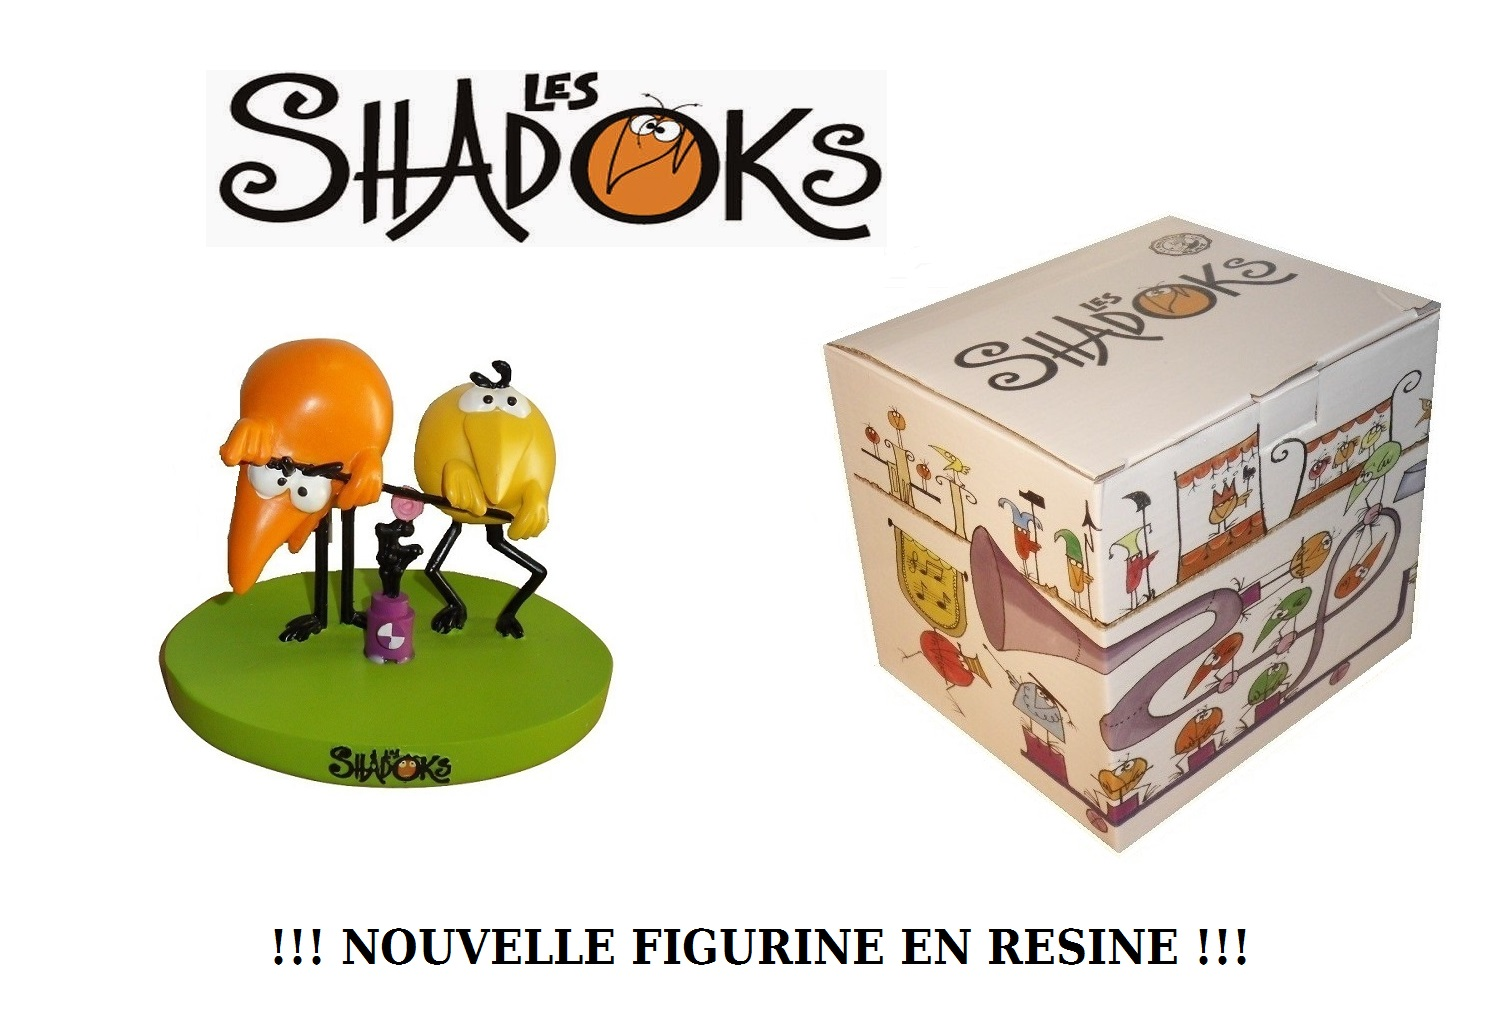 FIGURINE SHADOKS ! 40€ (ENVOI INCLUS !!!)